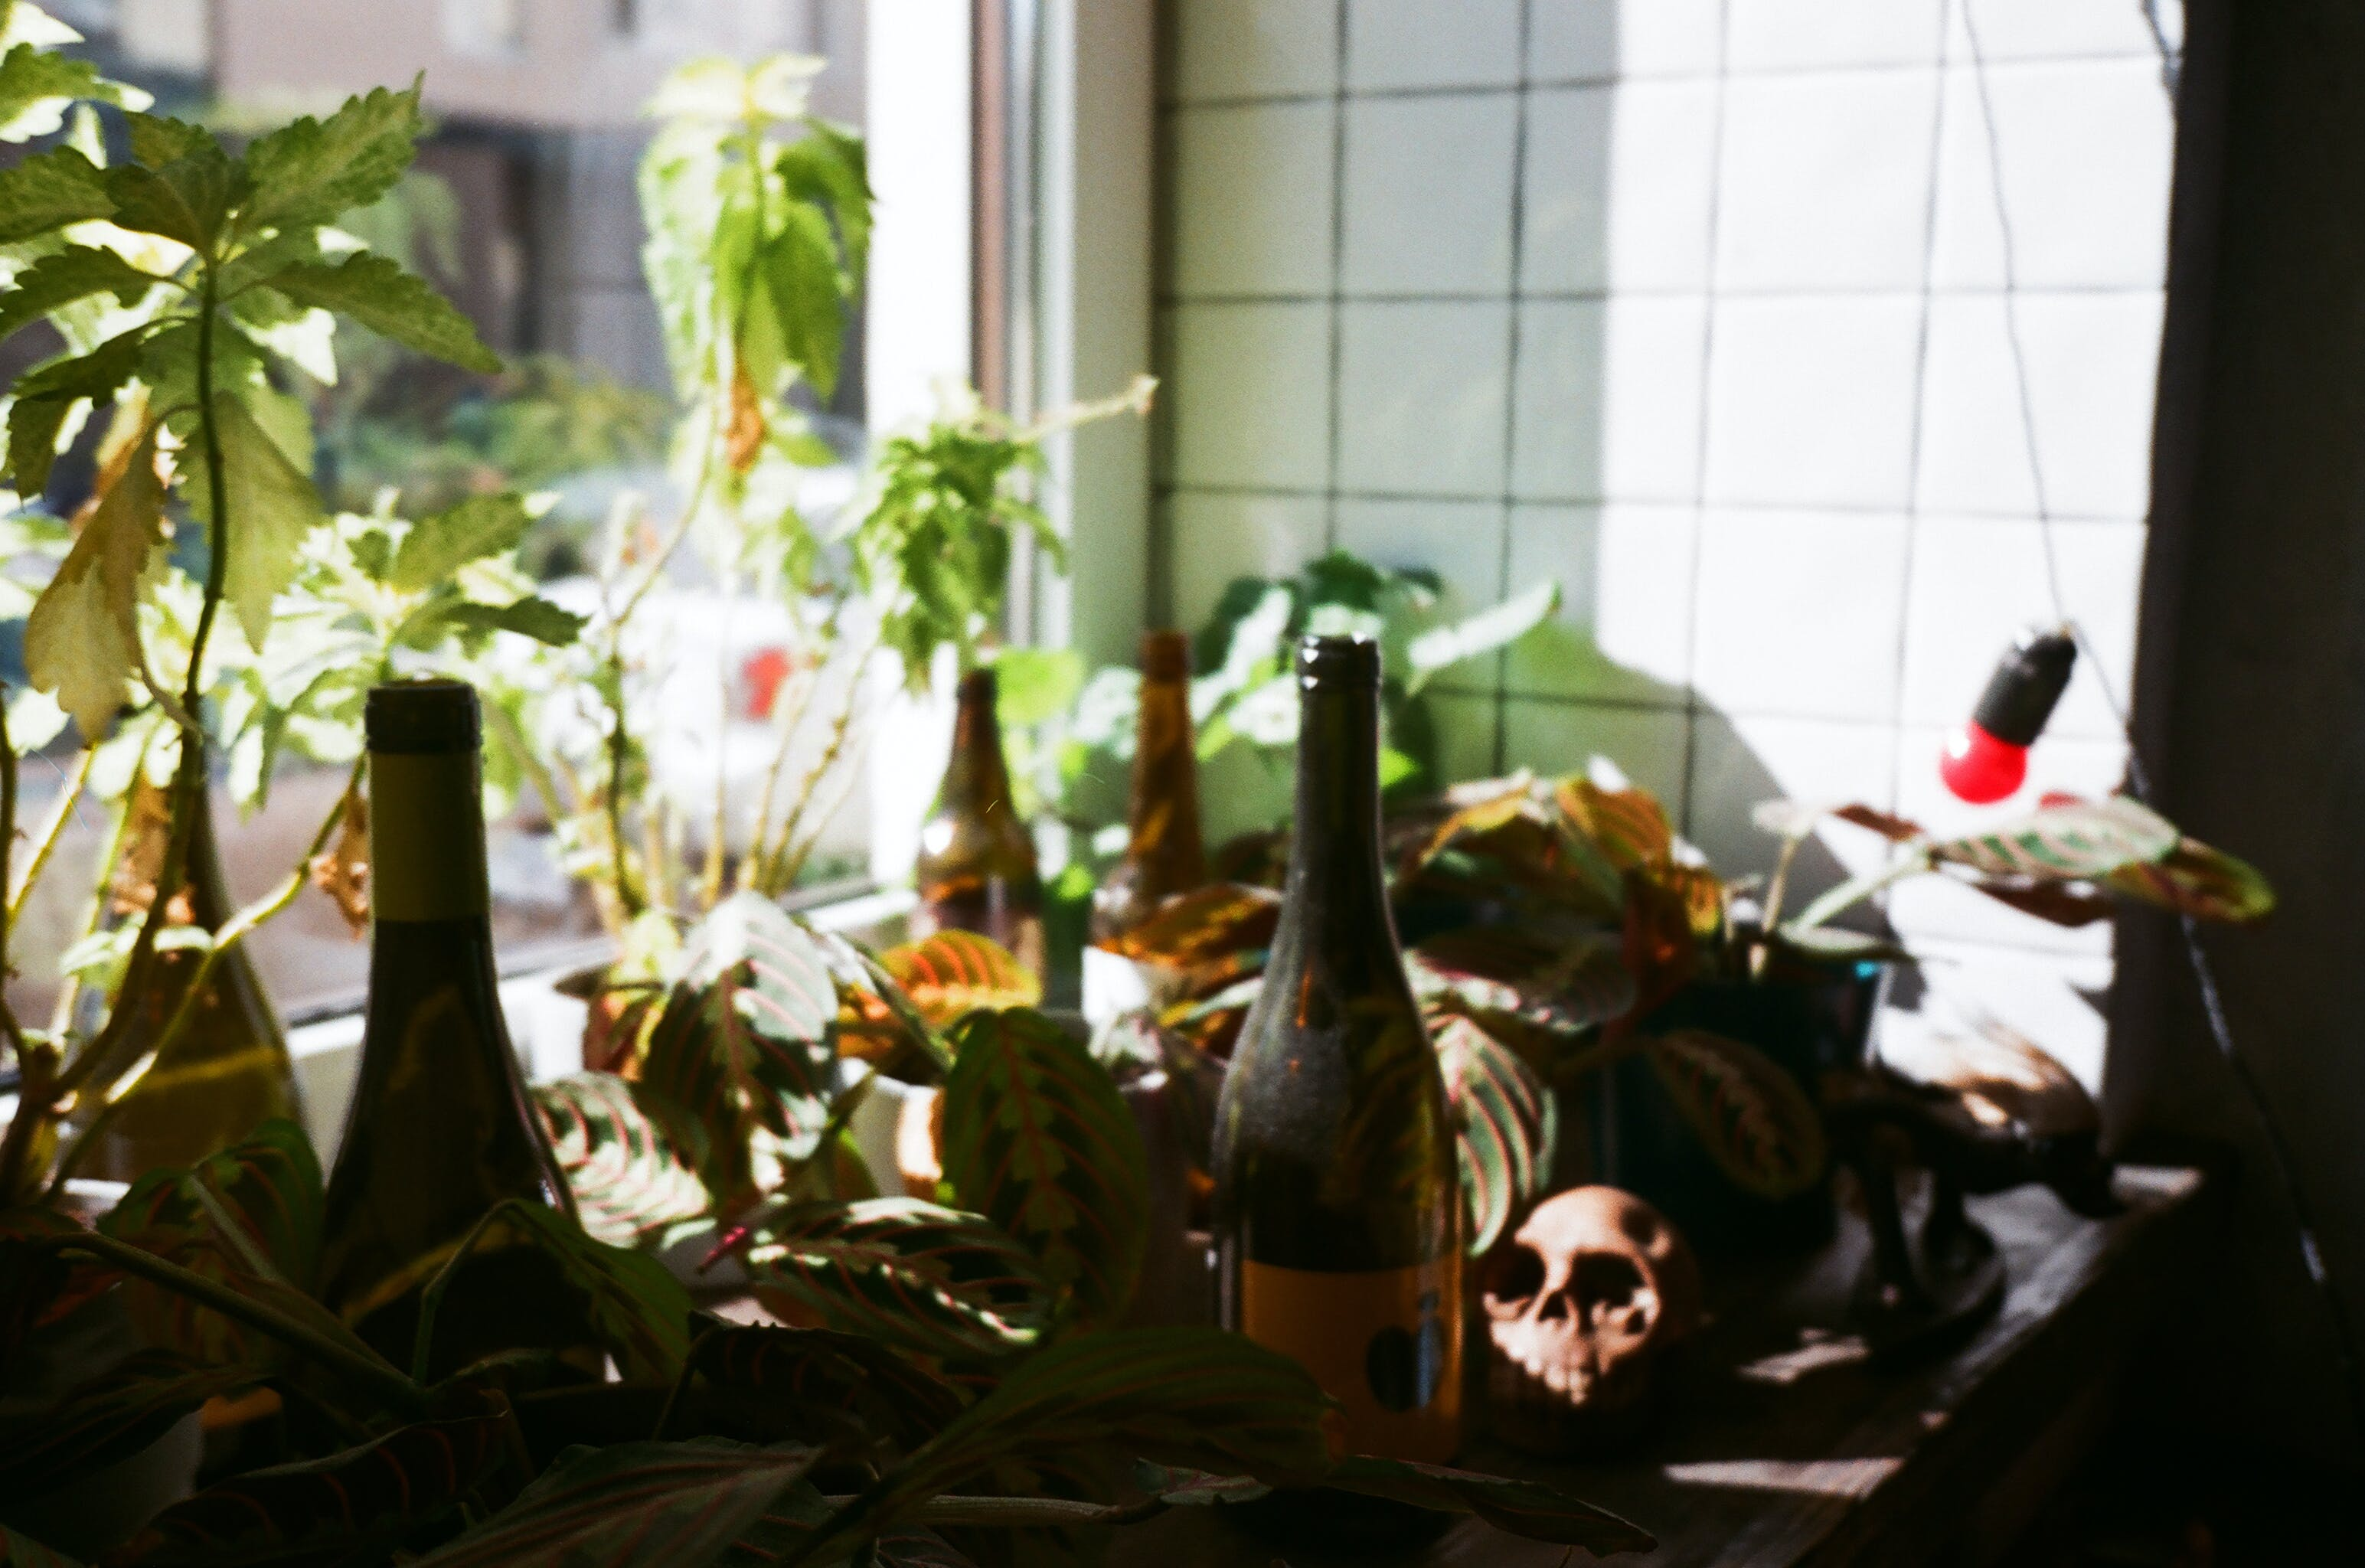 Brown Bottle on Table